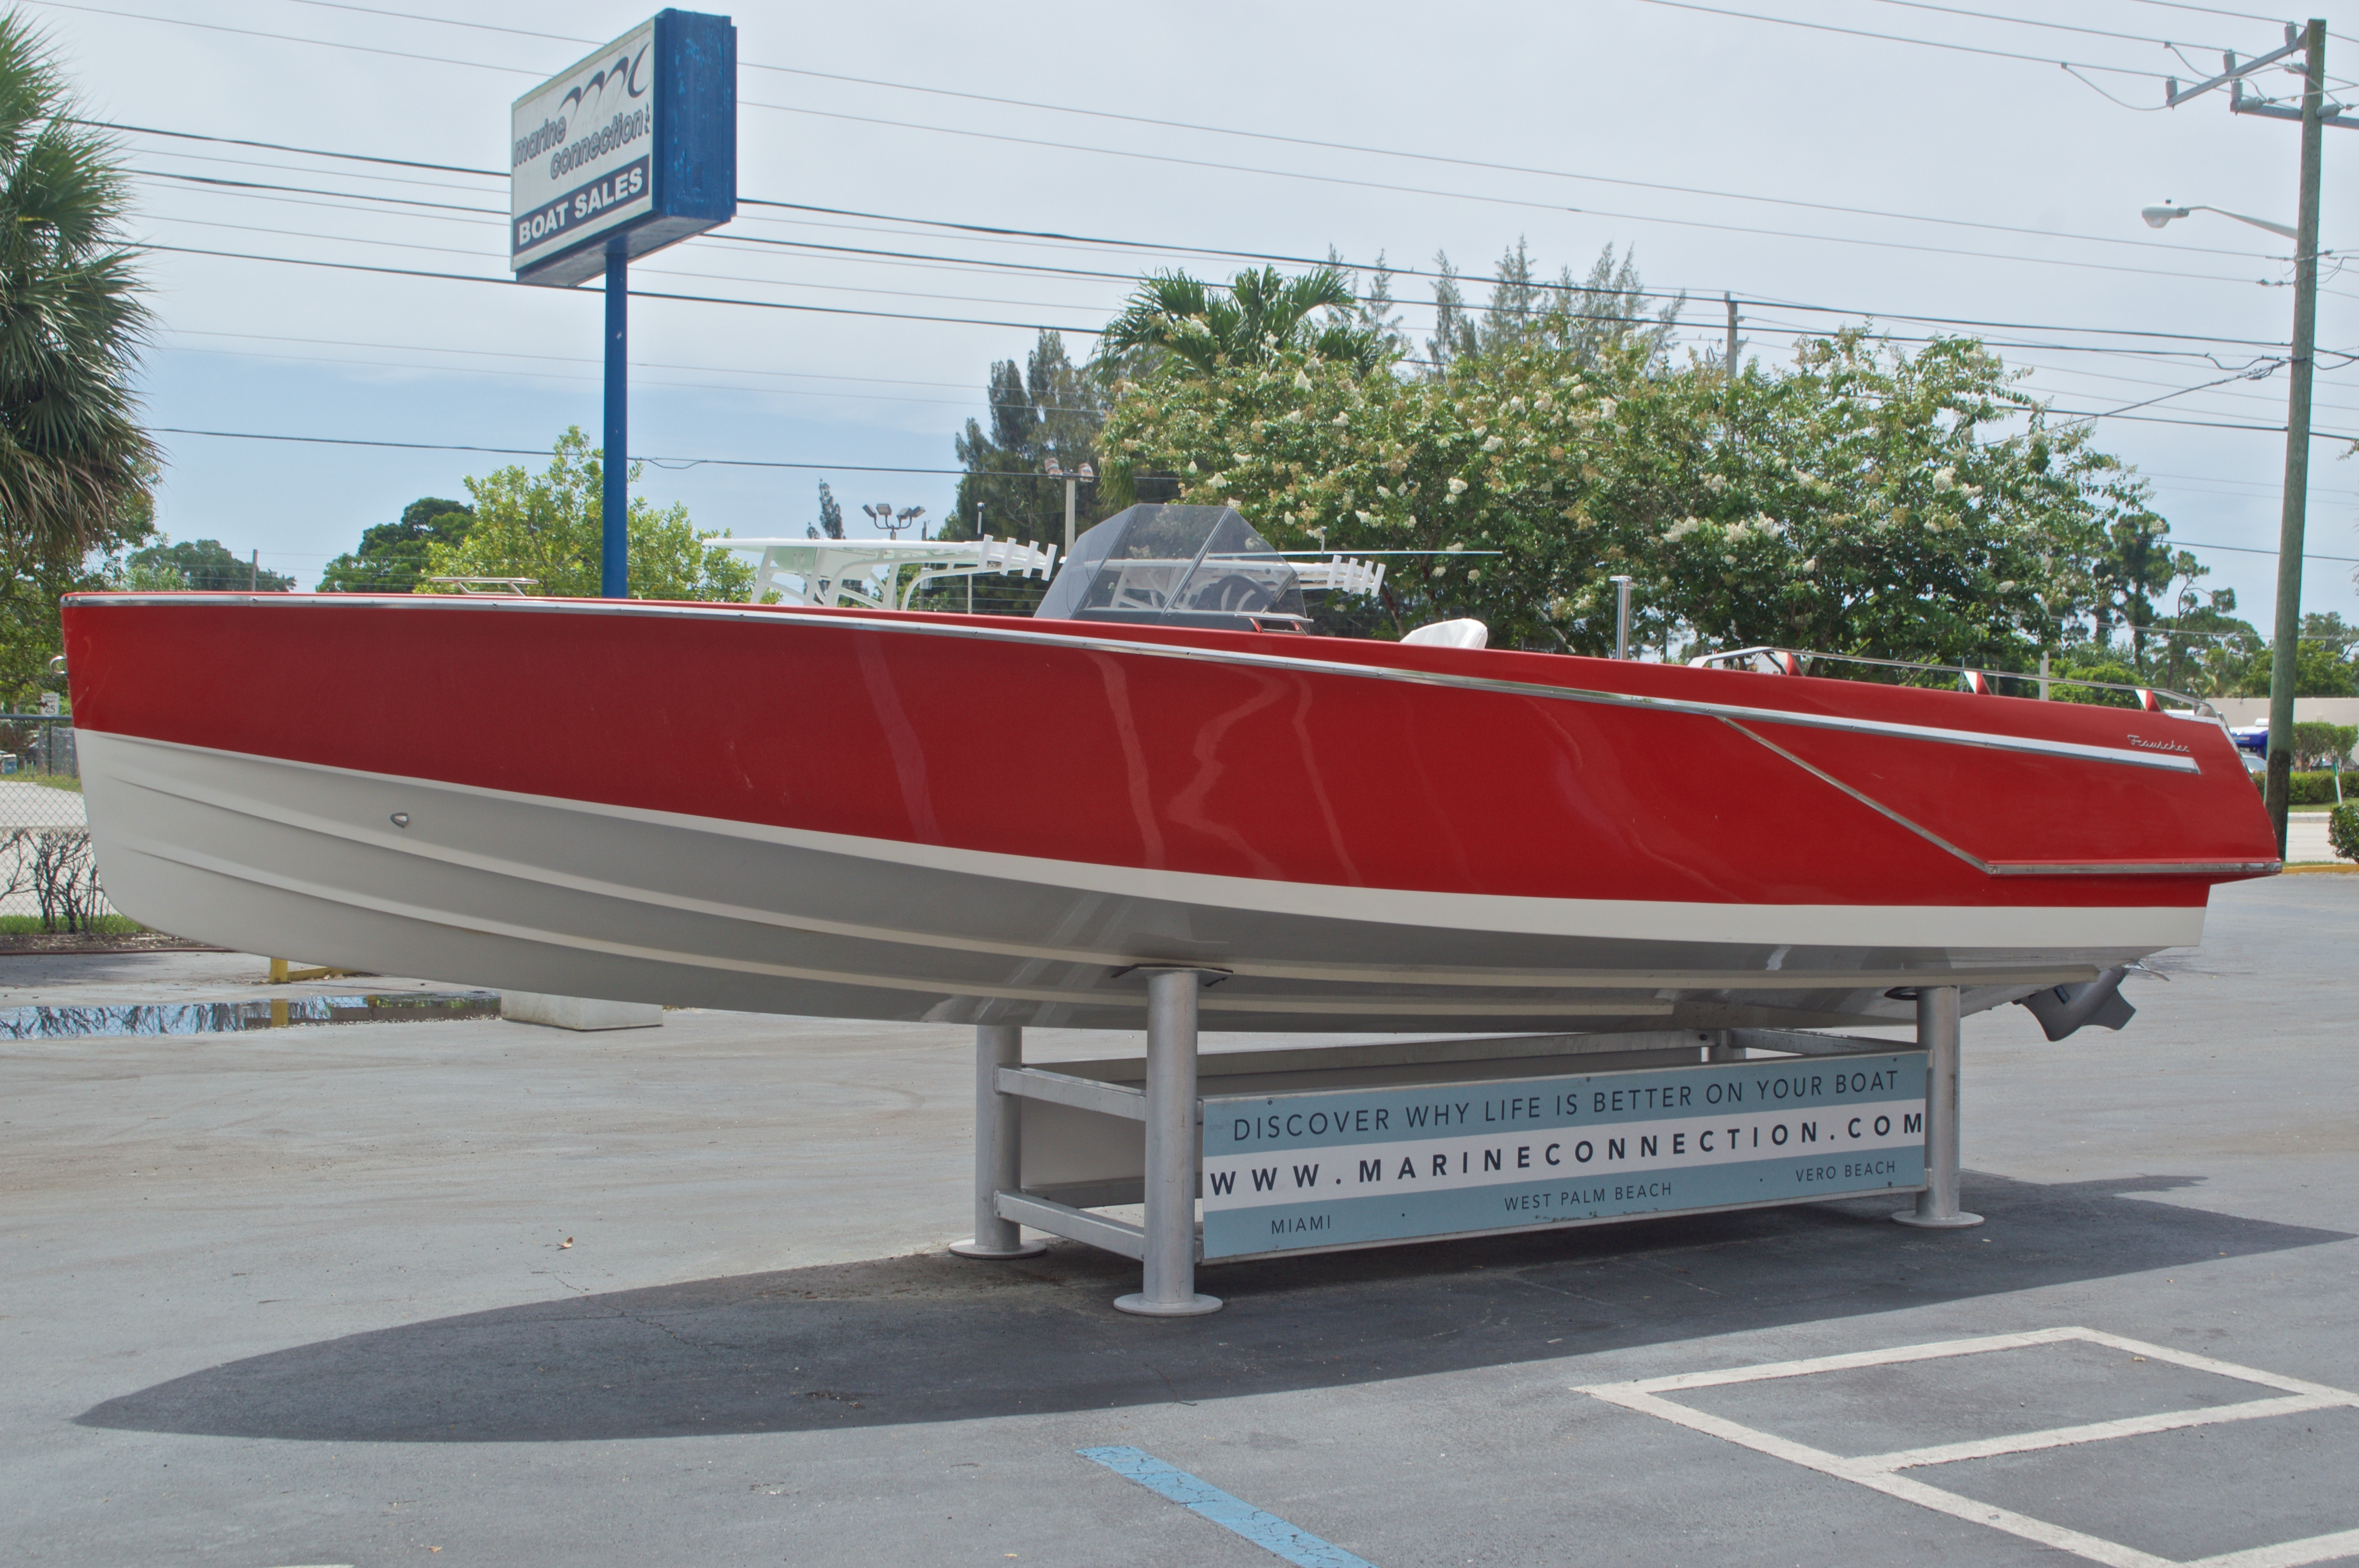 Thumbnail 3 for Used 2007 Frauscher 686 Lido boat for sale in West Palm Beach, FL